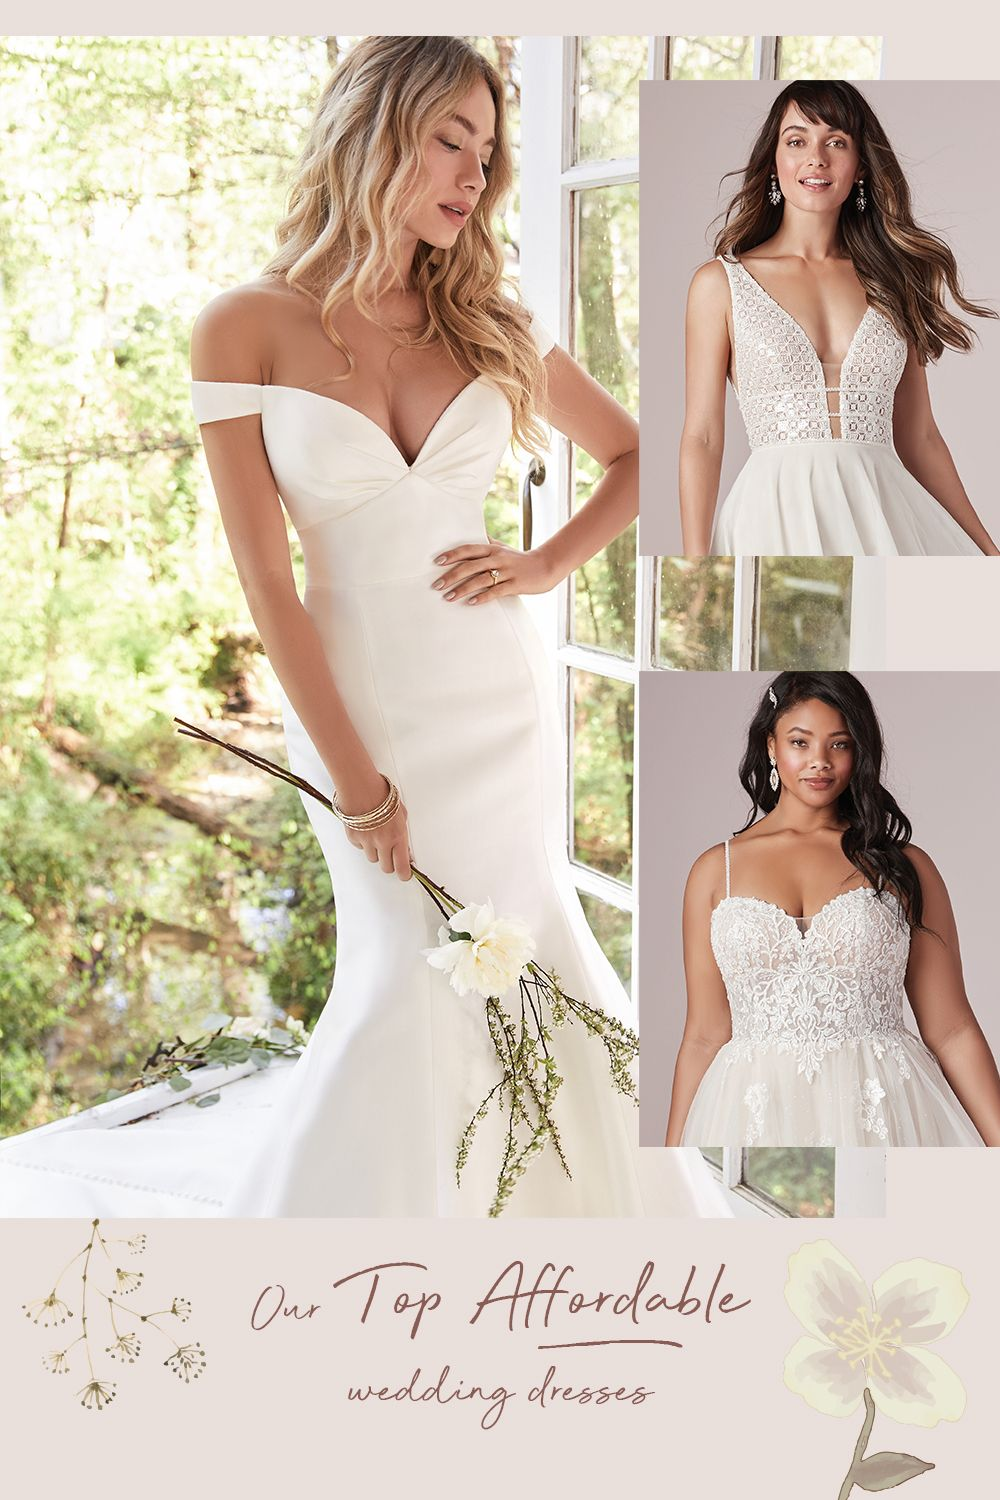 Our Top Affordable Wedding Gowns By Rebecca Ingram In 2020 Wedding Dresses Affordable Wedding Dresses Affordable Wedding Gown